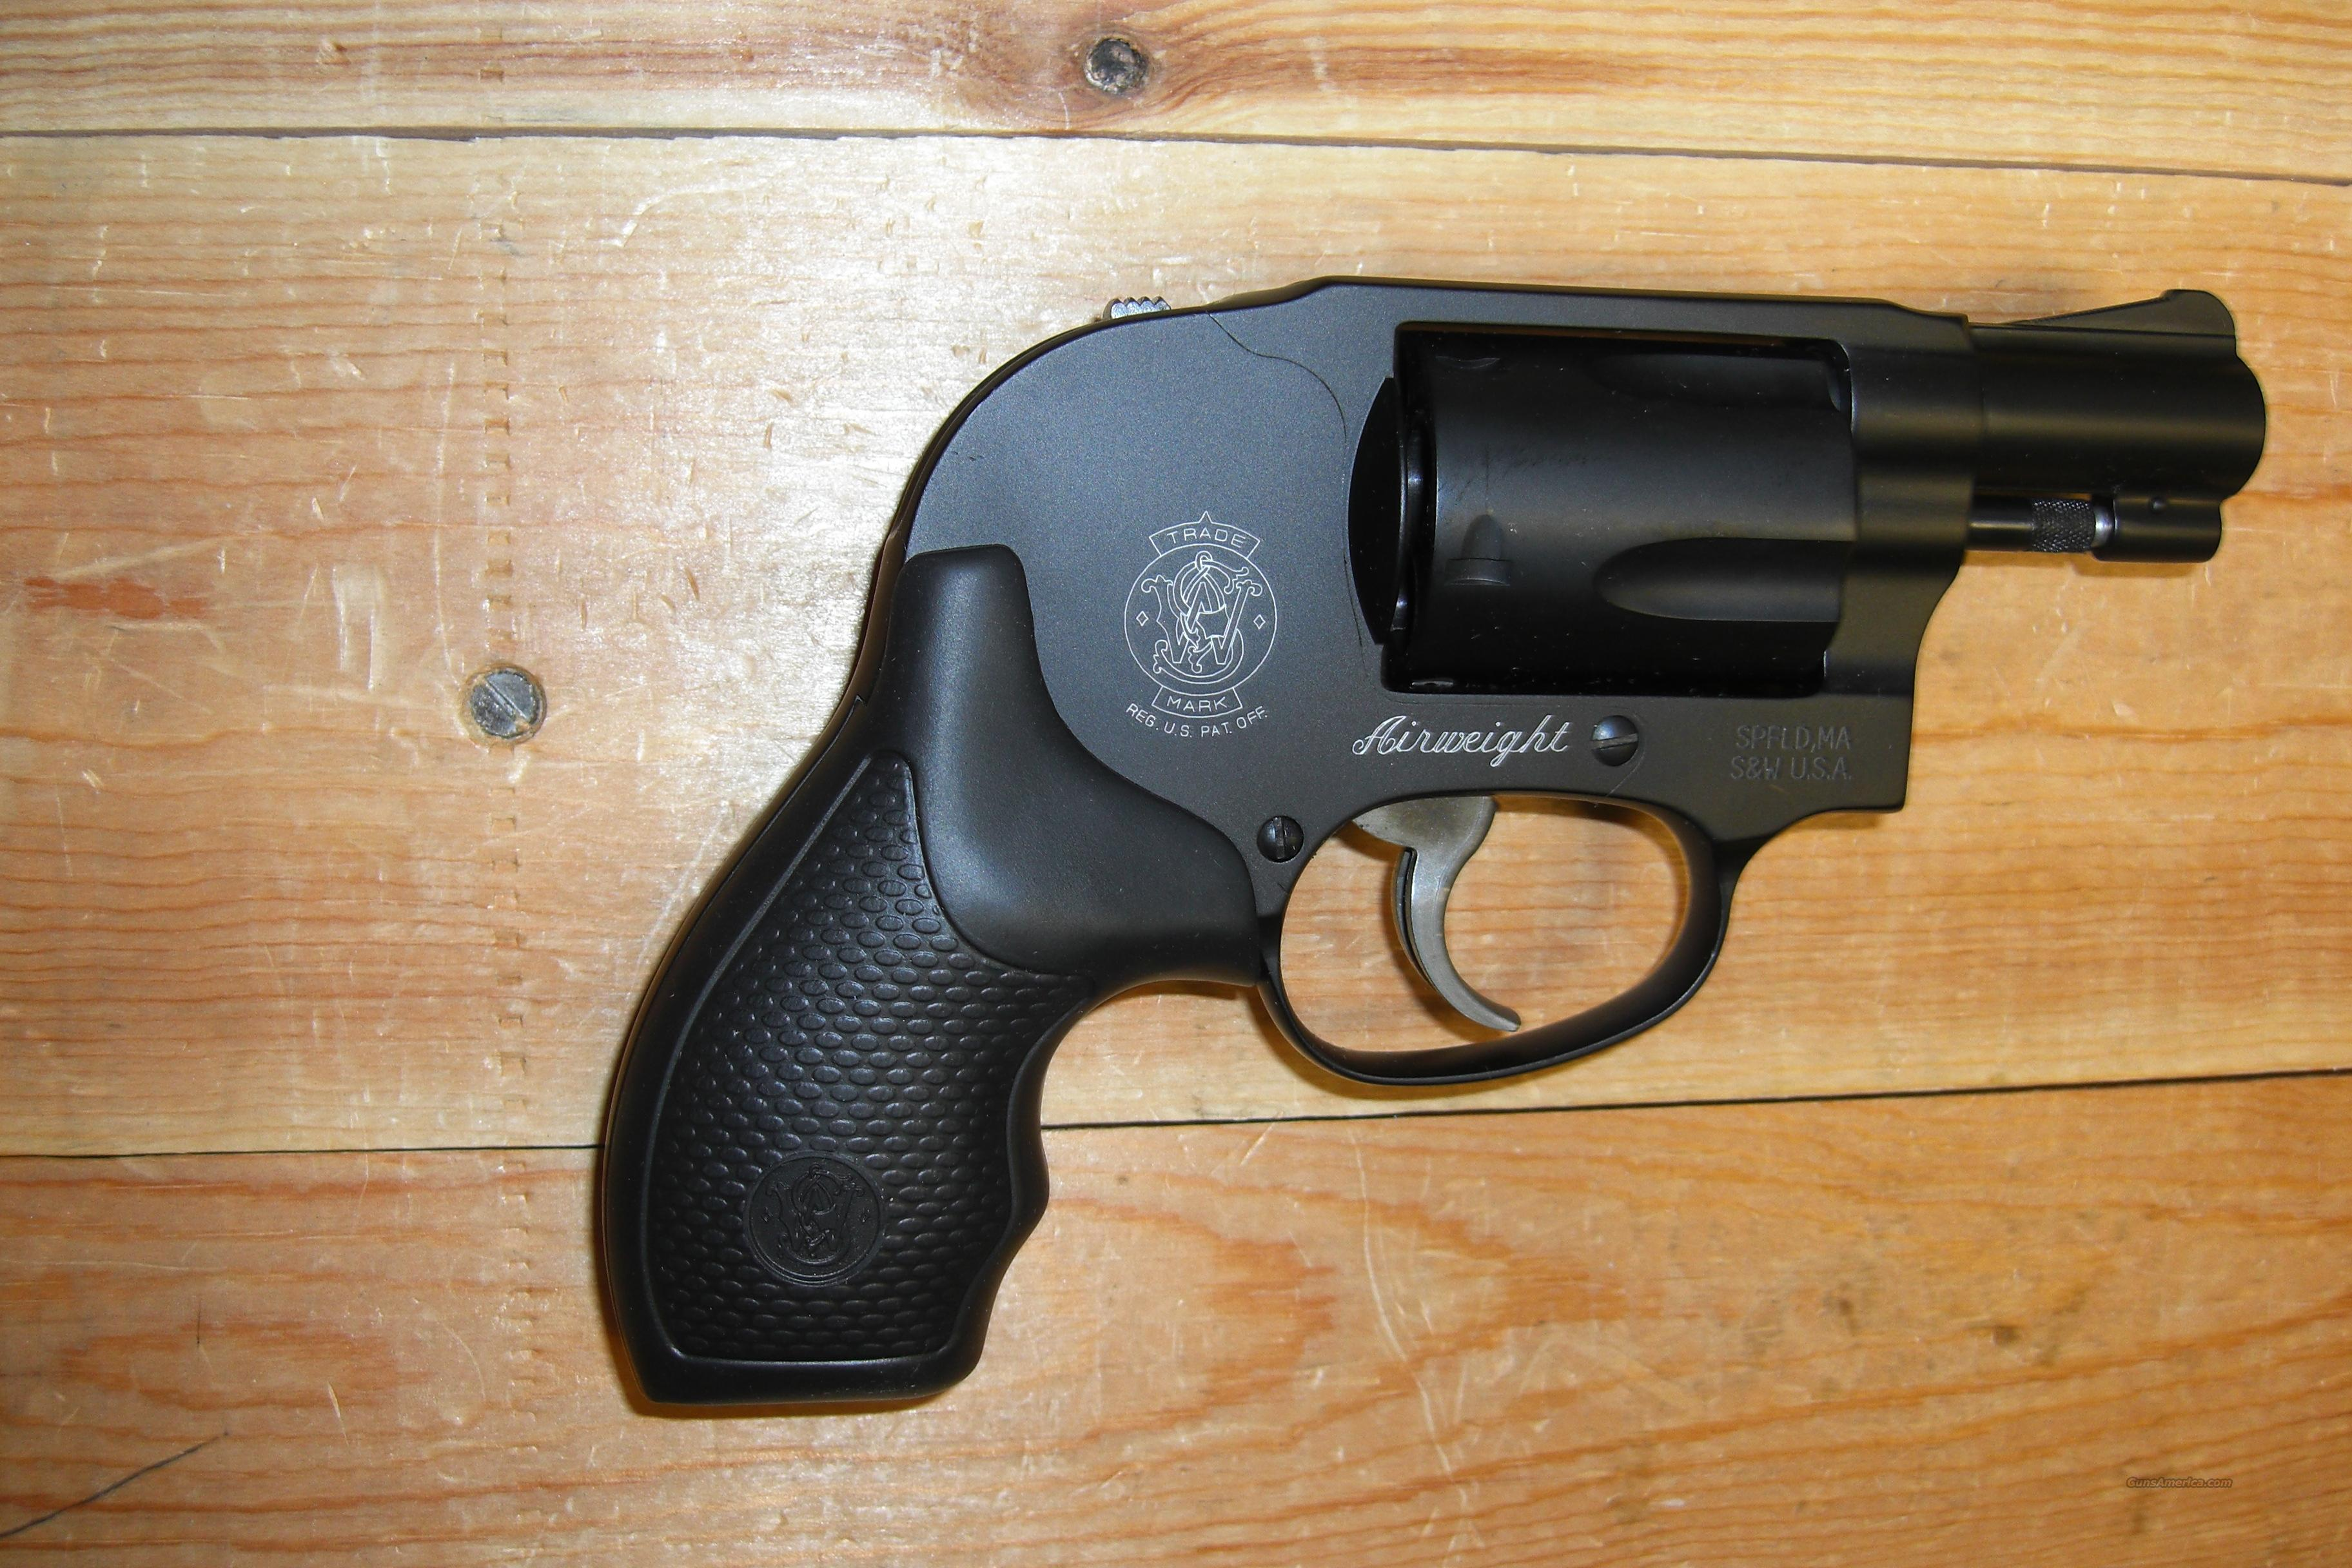 438 Airweight w/shrouded hammer  Guns > Pistols > Smith & Wesson Revolvers > Pocket Pistols